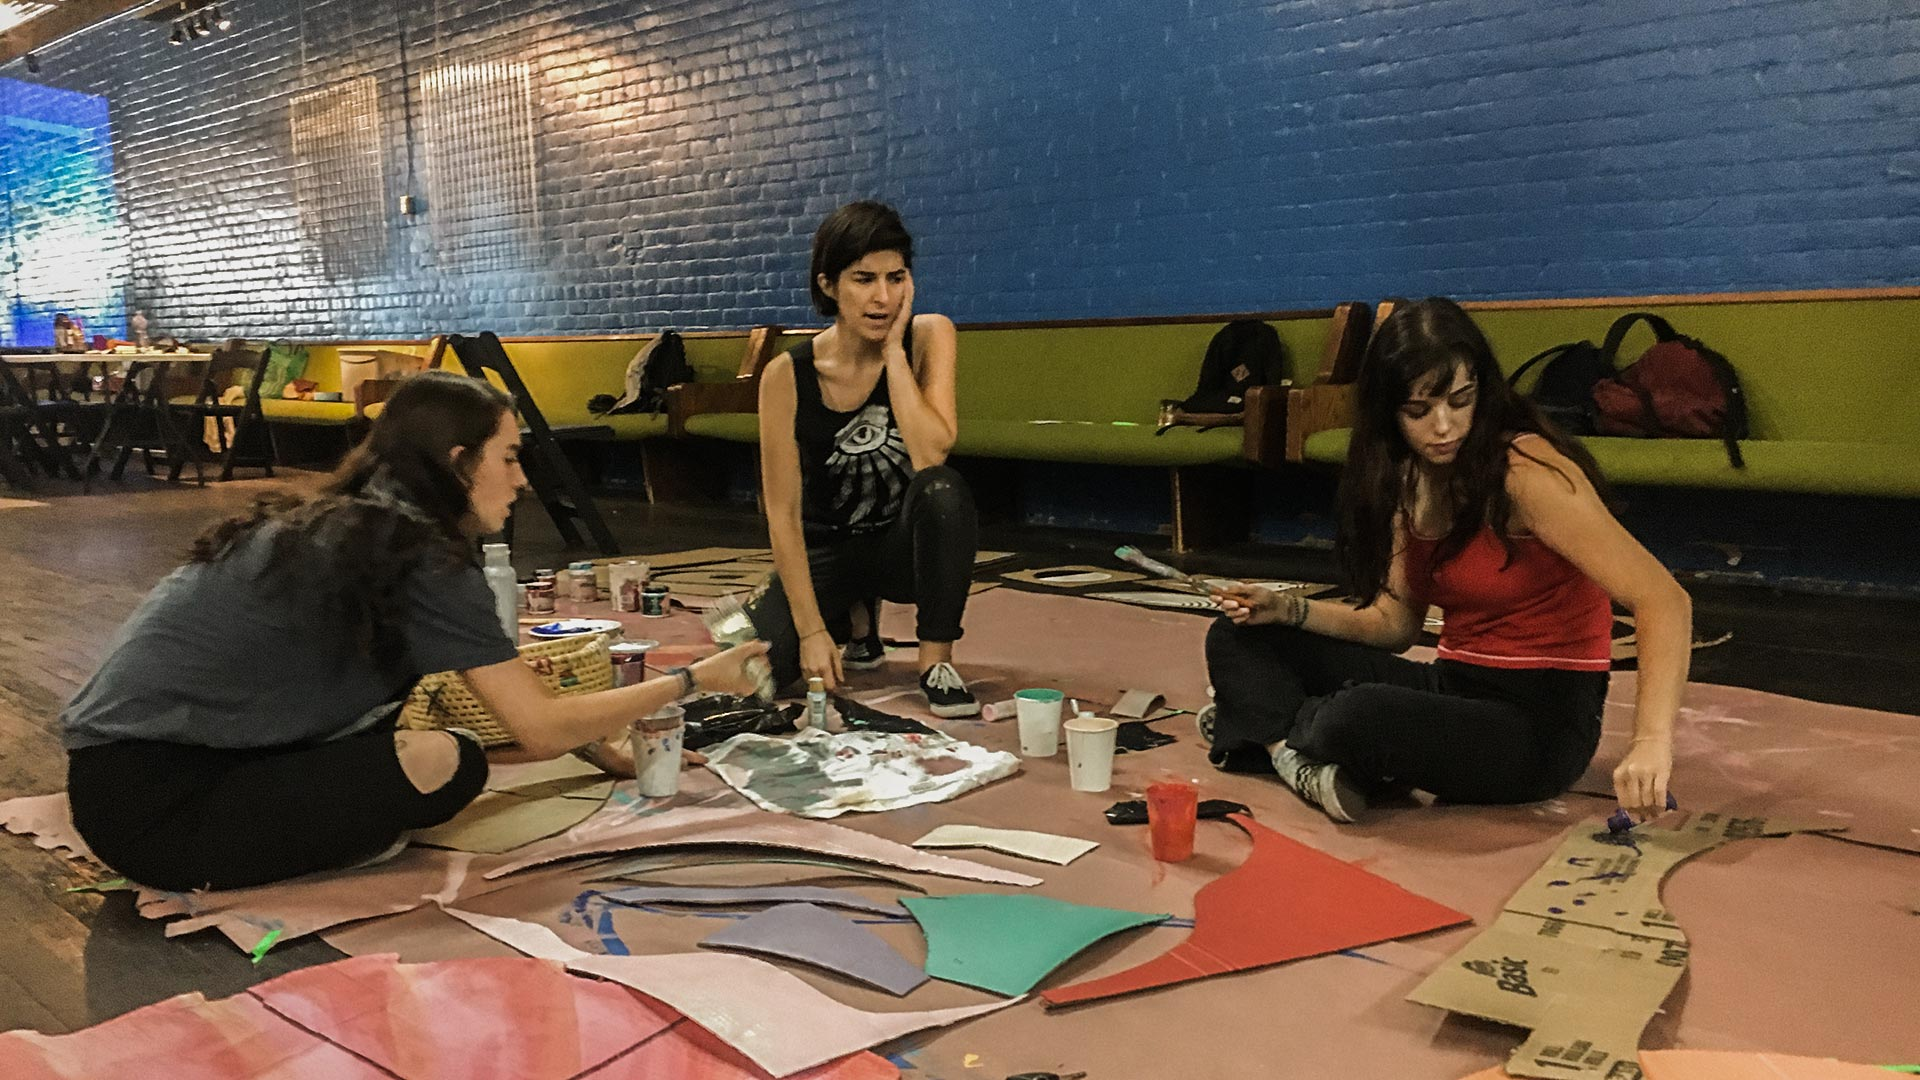 Lano Dash assembles an art installation with her little sister, Sophia, and her friend, Renae. The piece will be featured at this year's Chick Magnet festival.